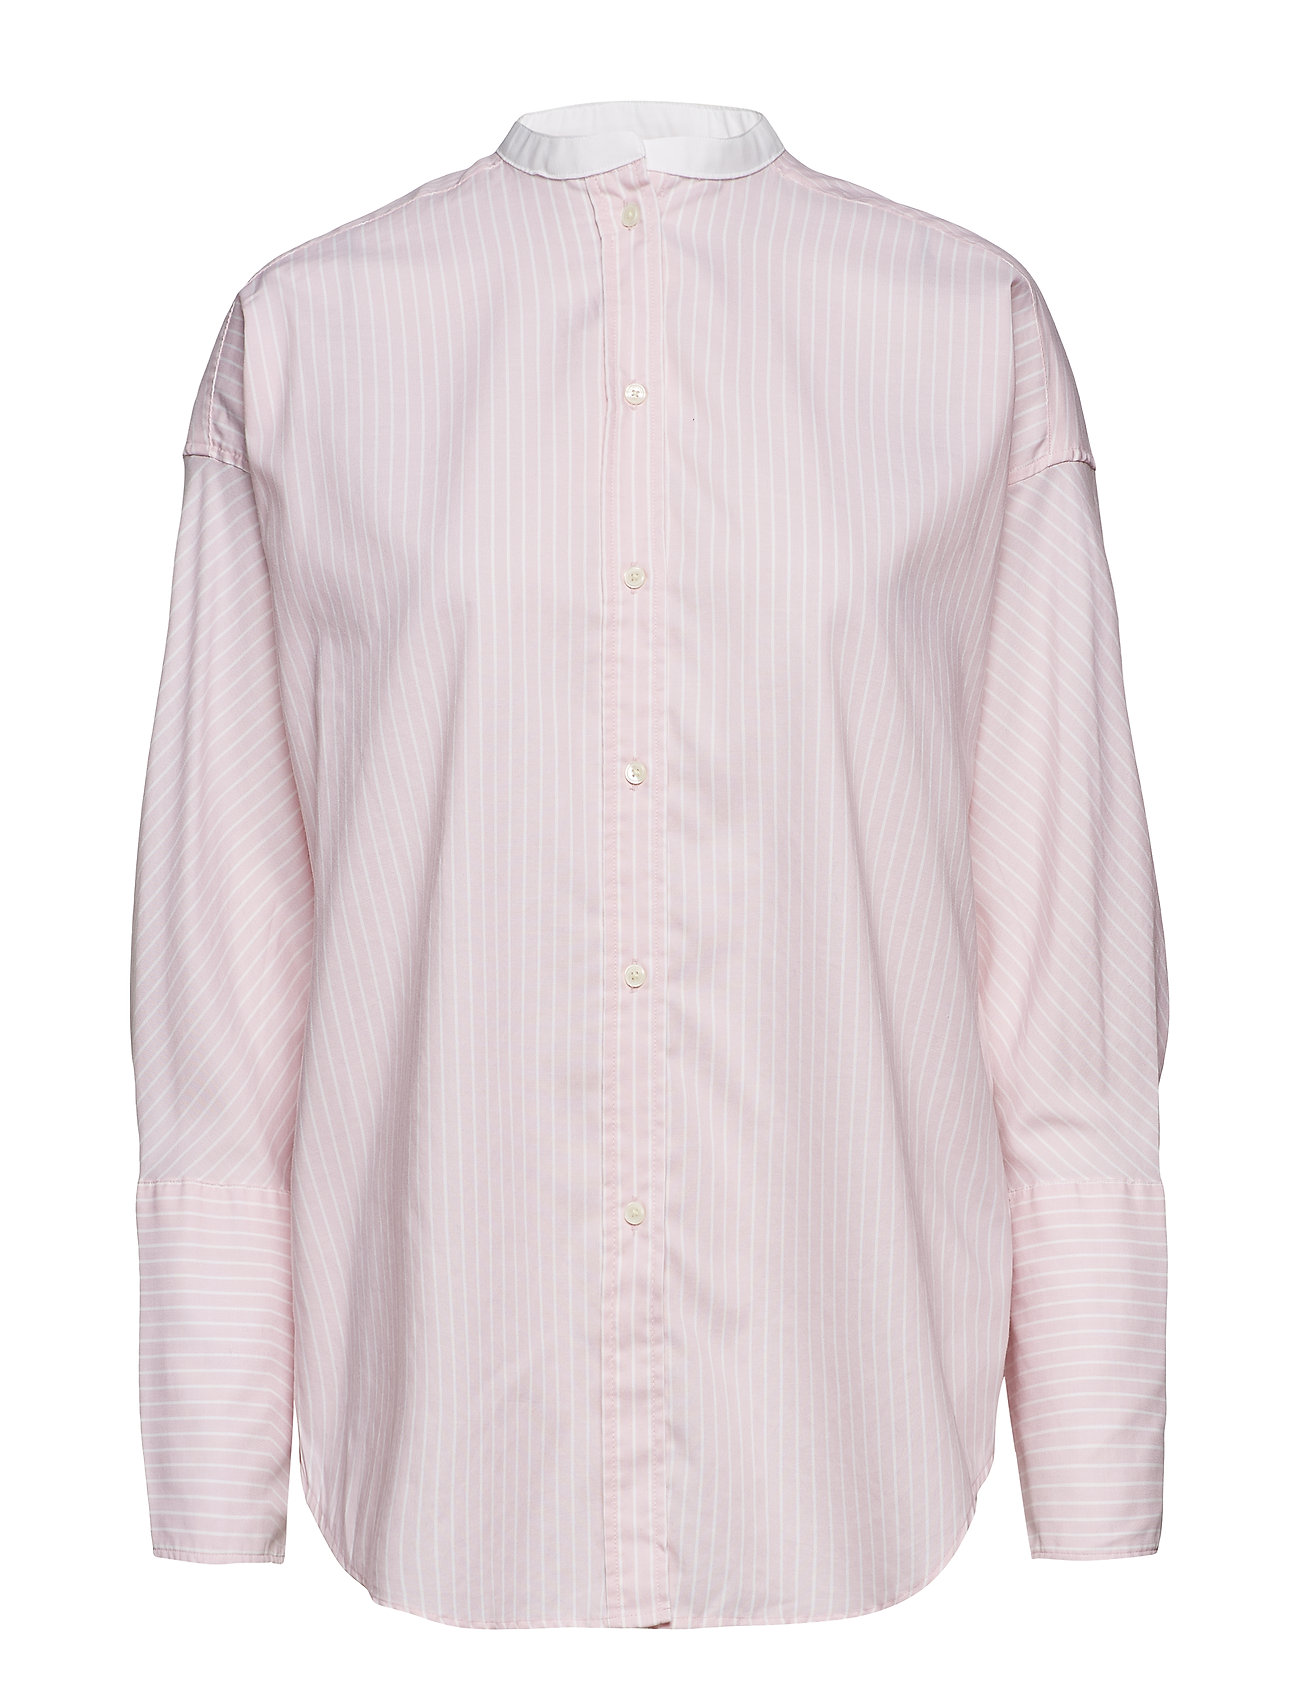 Gant O1. TP OVERSIZED OXFORD SHIRT - CALIFORNIA PINK